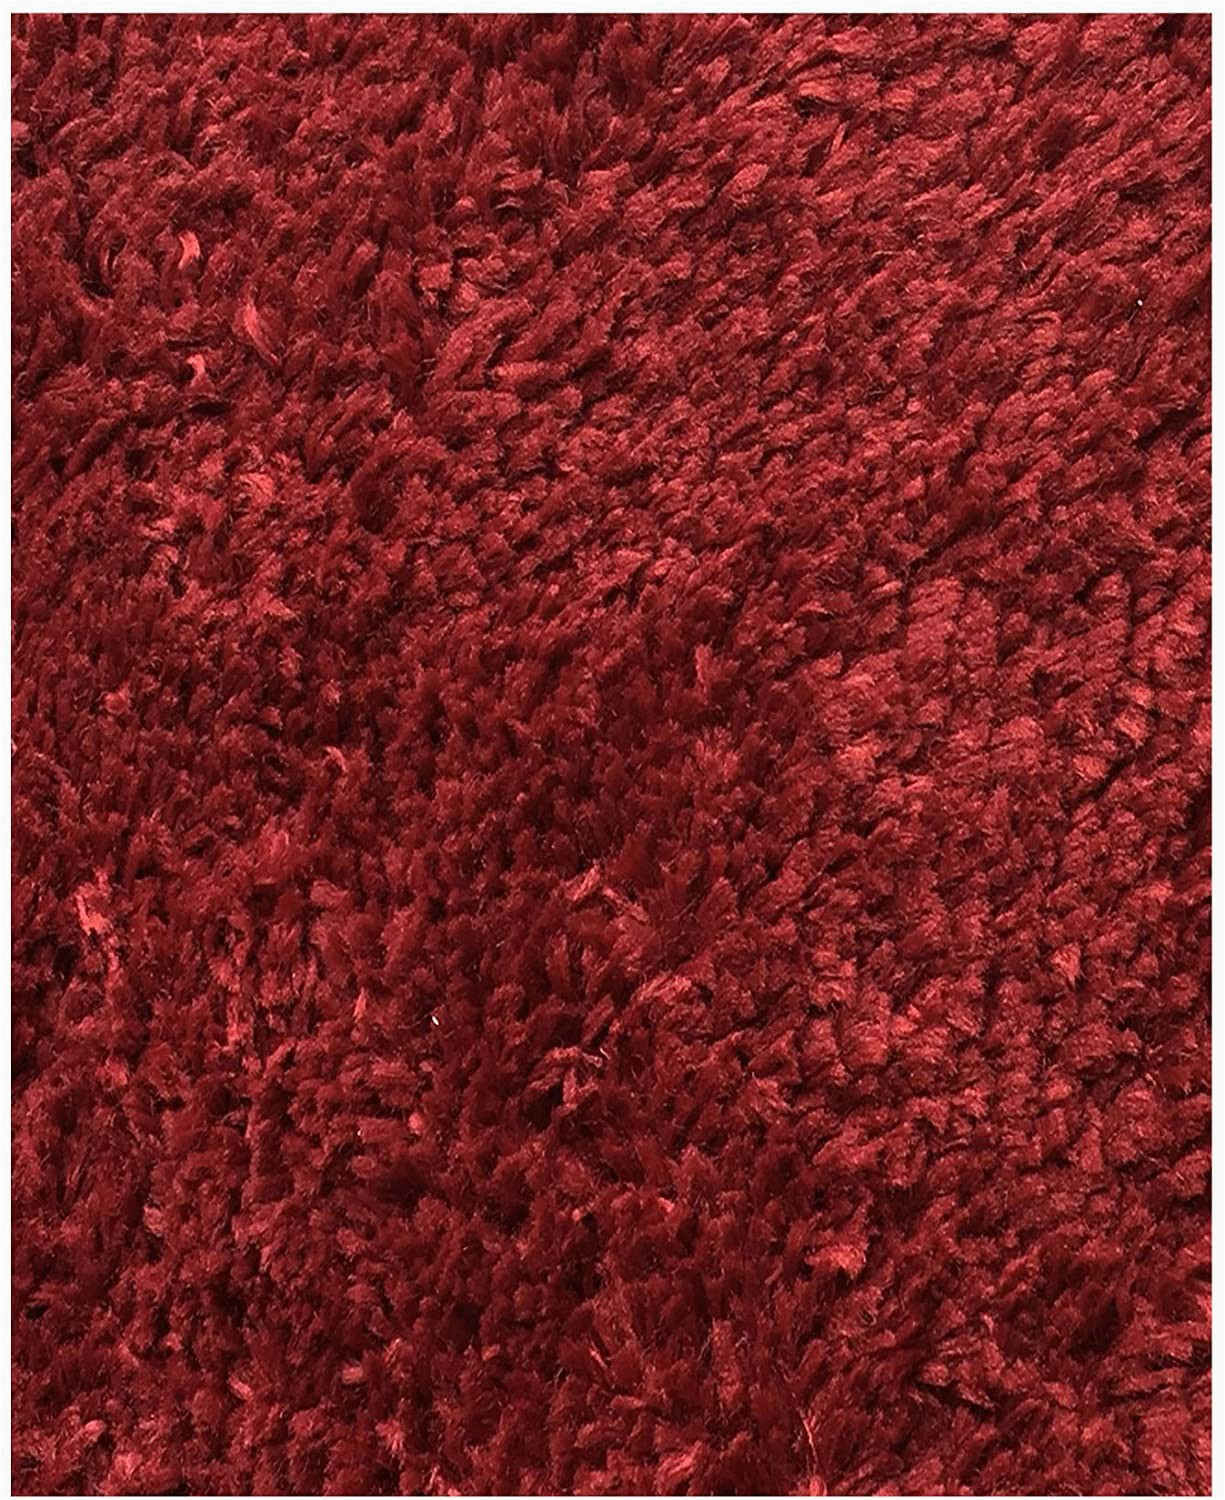 Royal Velvet Plush Bath Rugs Mohawk Home Cut to Fit Royale Velvet Plush Bath Carpet Claret 5 by 6 Feet